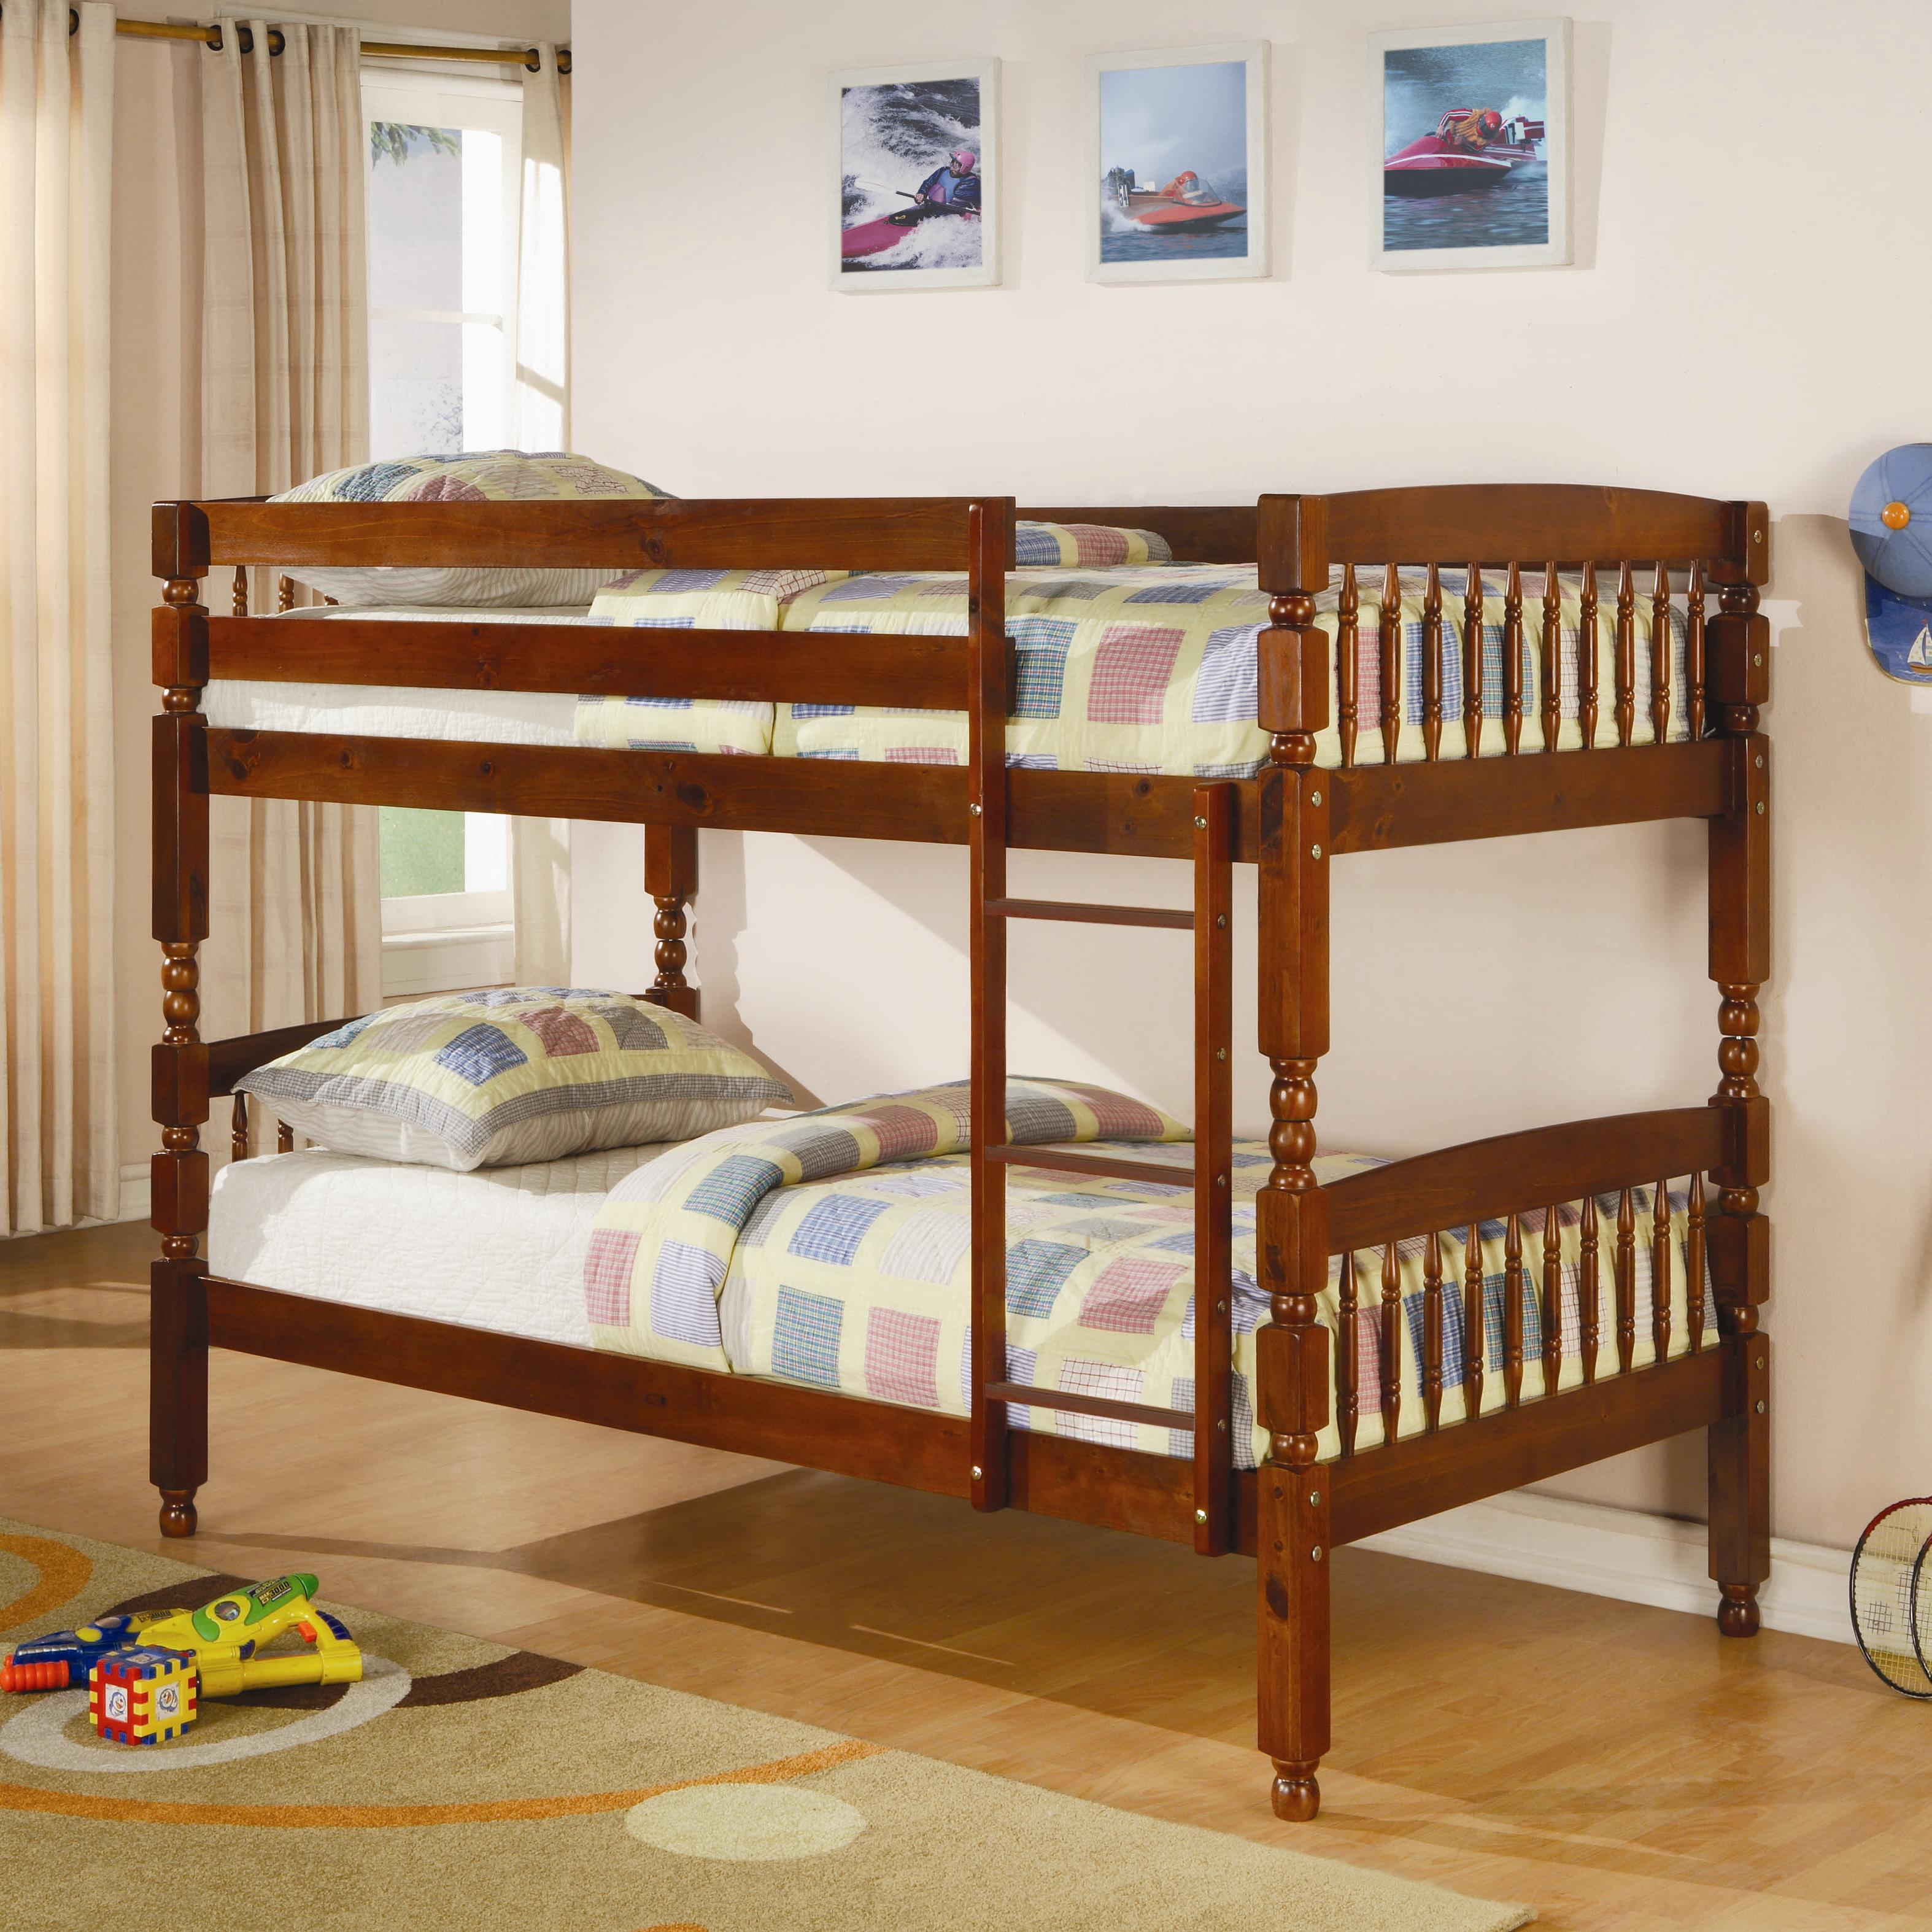 Coaster Bunks Twin Bunk Bed - Item Number: 460223